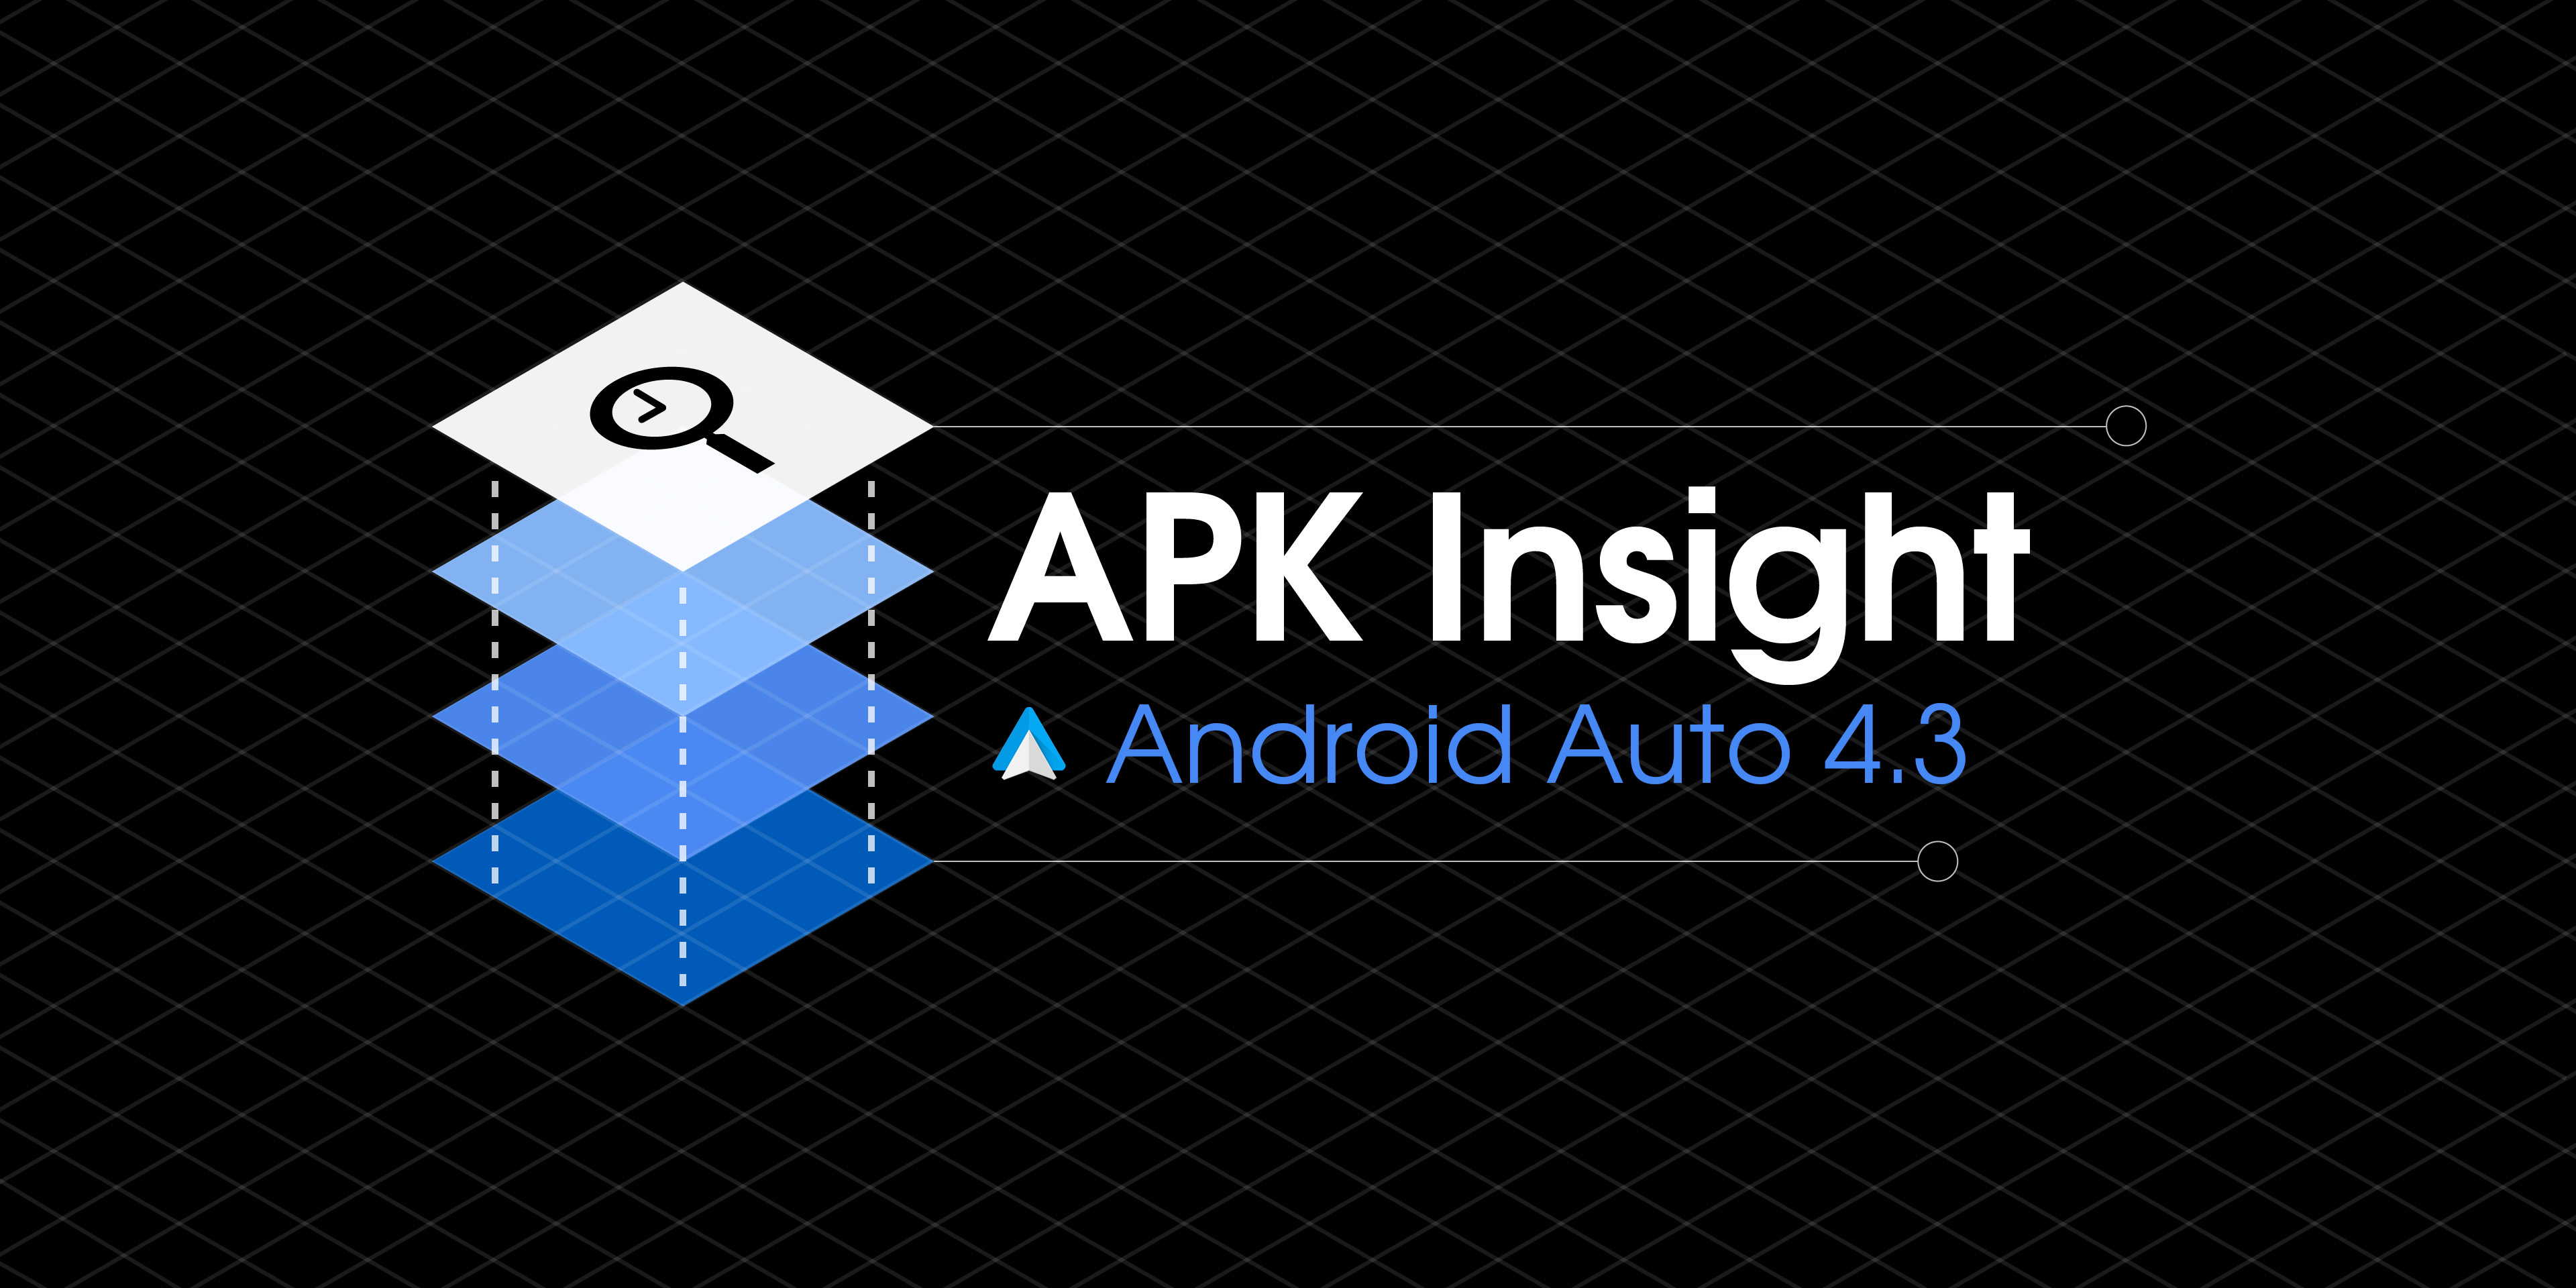 Android Auto 4.3 preps upcoming 'Boardwalk' redesign [APK Insight]